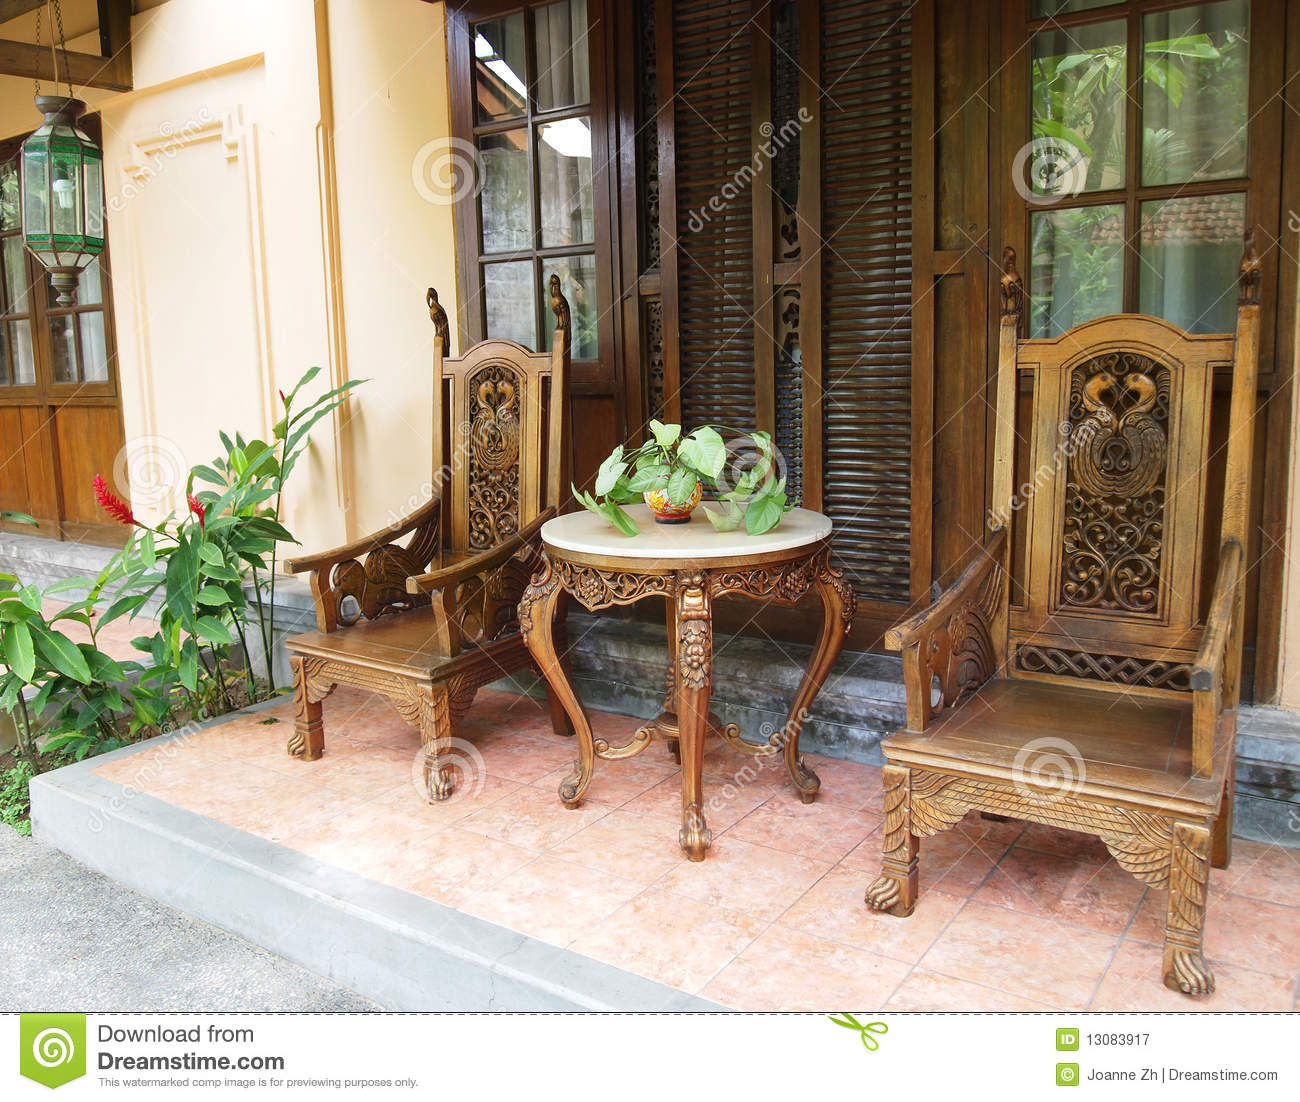 Balinese Furniture On Patio Royalty Free Stock Photography - Image ...